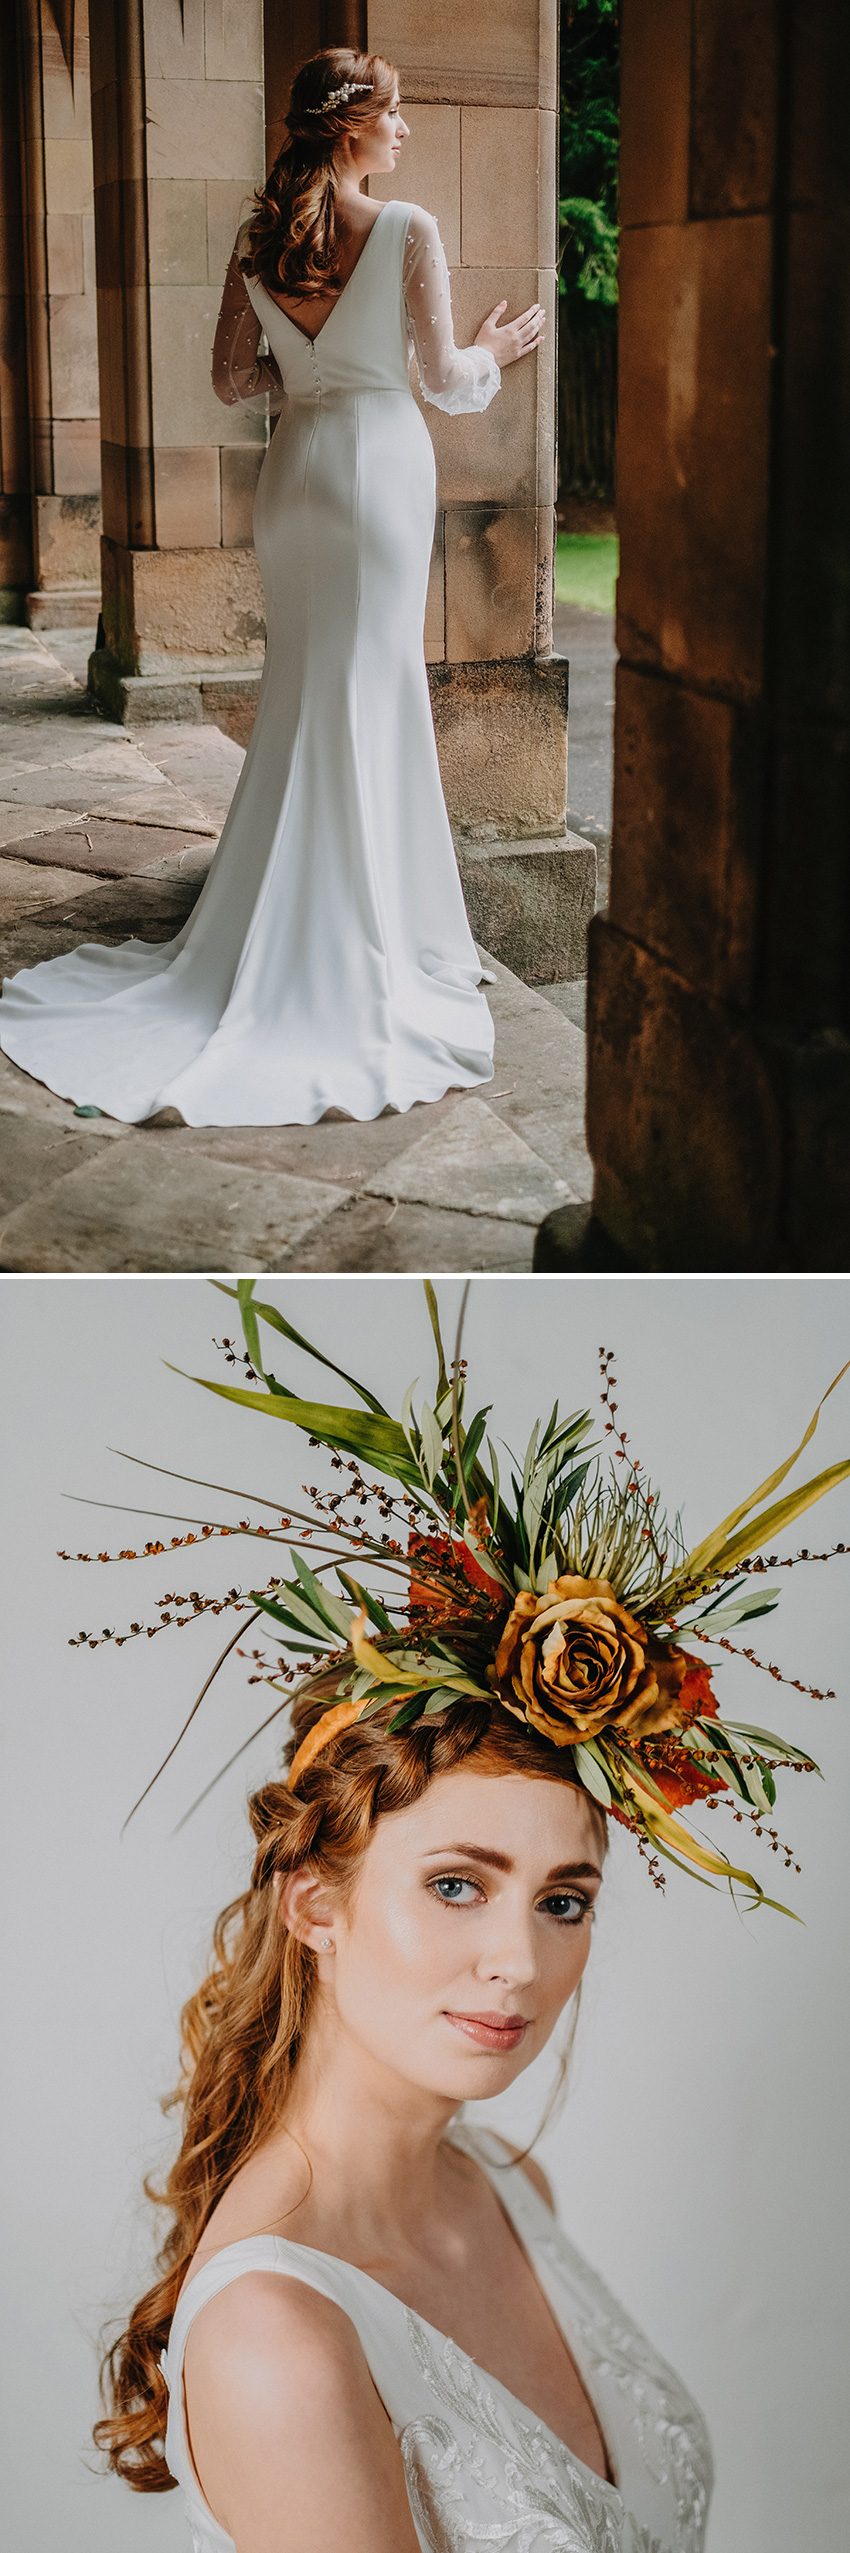 Bridal photographed in Sir Richard Arkwright's first mill wearing Wendy Makin wedding gowns featured in Perfect Wedding Magazine